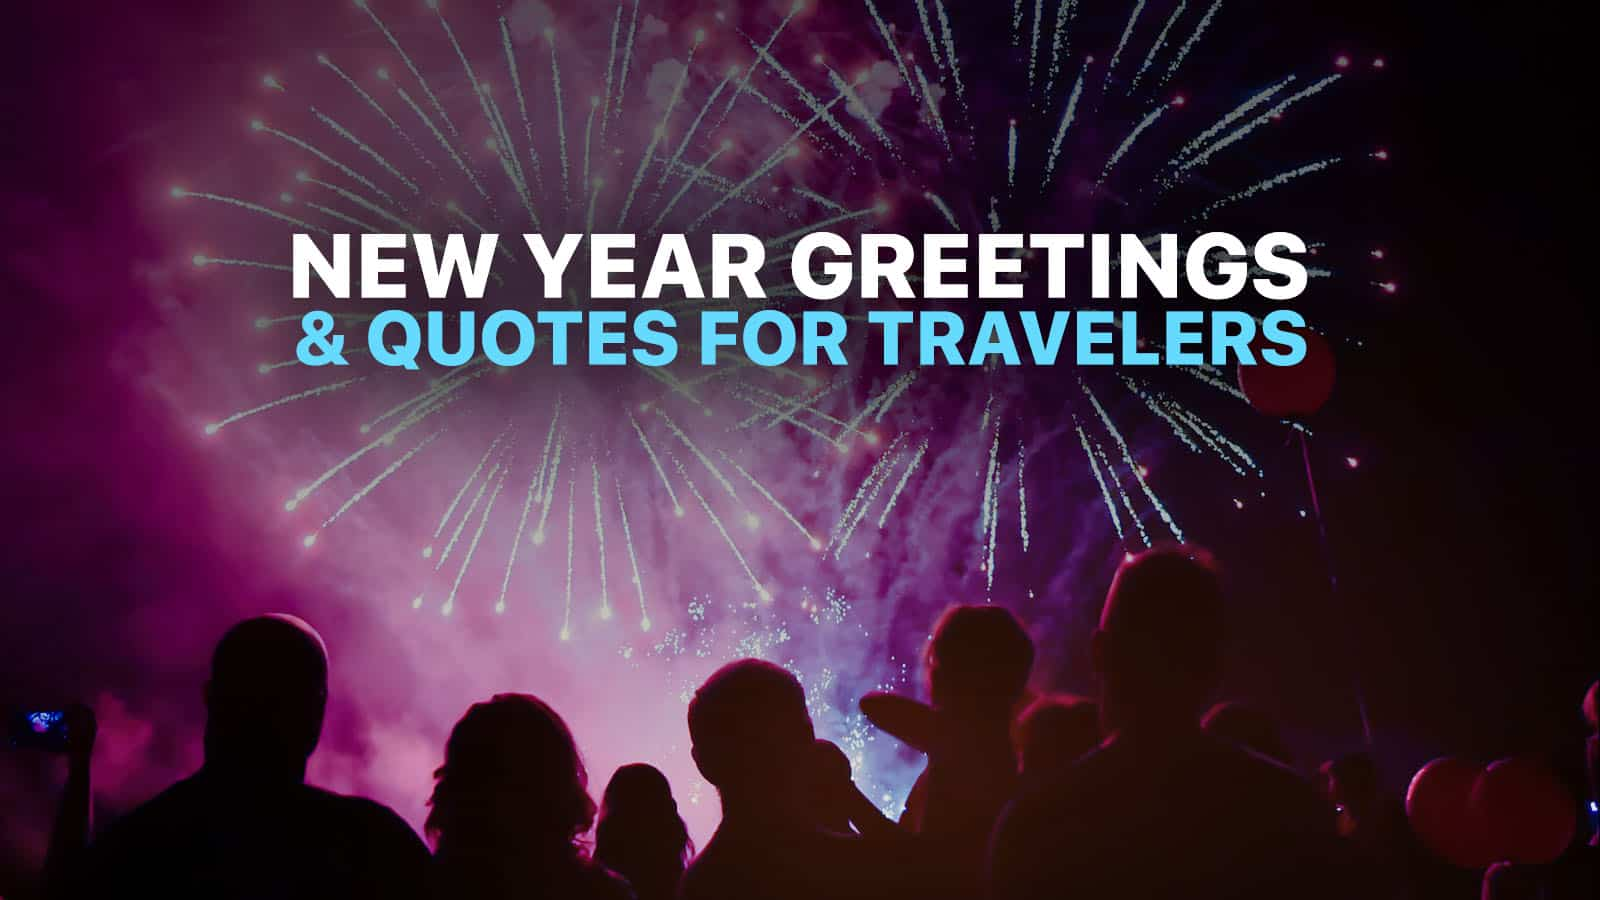 12 NEW YEAR QUOTES, WISHES & GREETINGS for Travelers